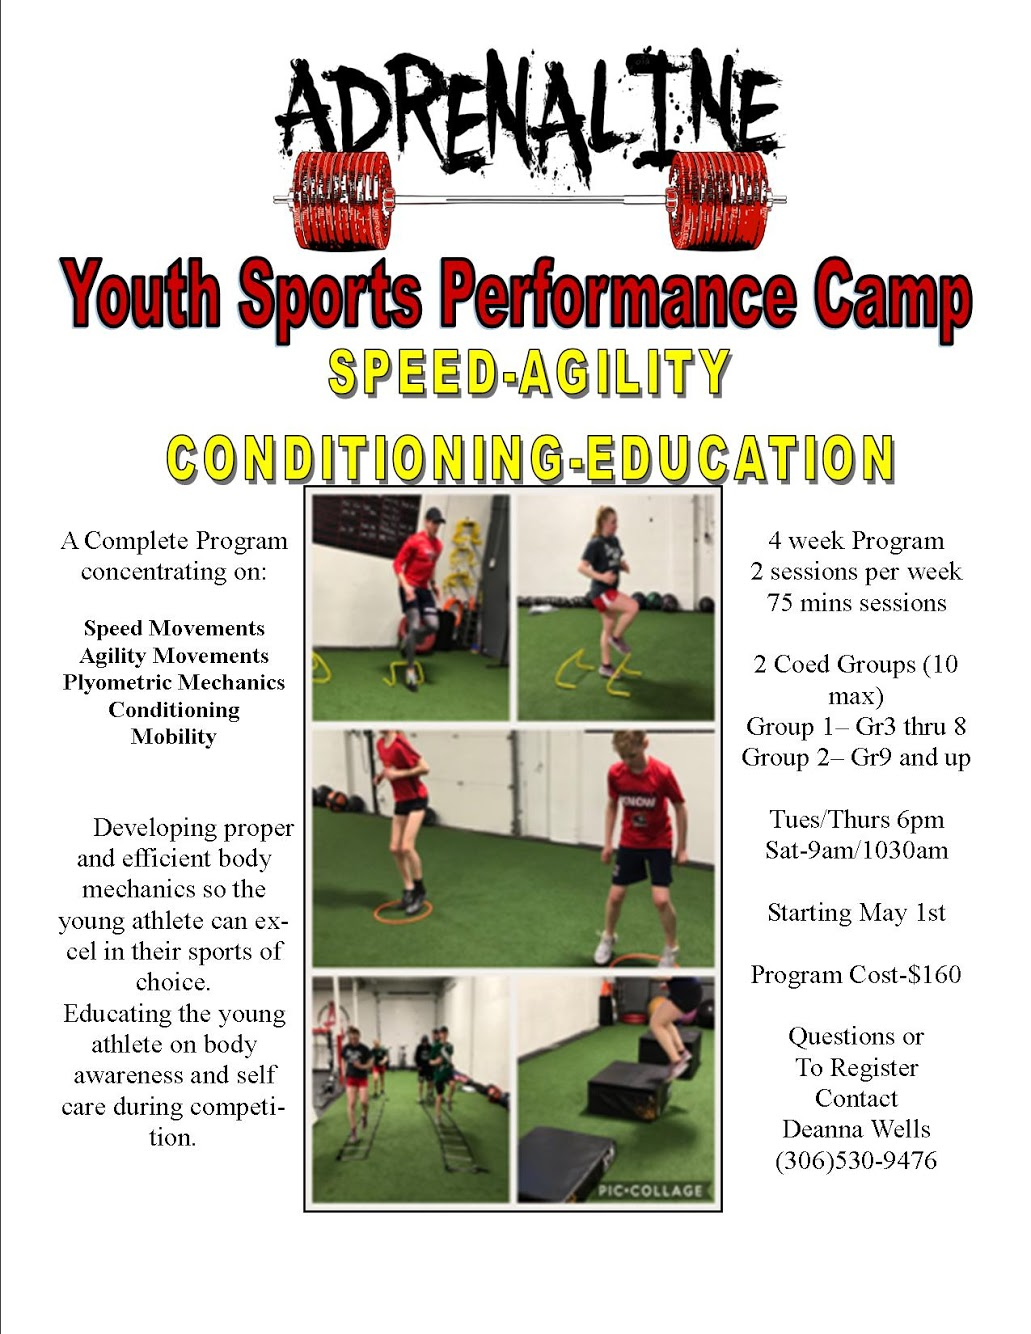 Adrenaline Youth Performance Camp - Image 2